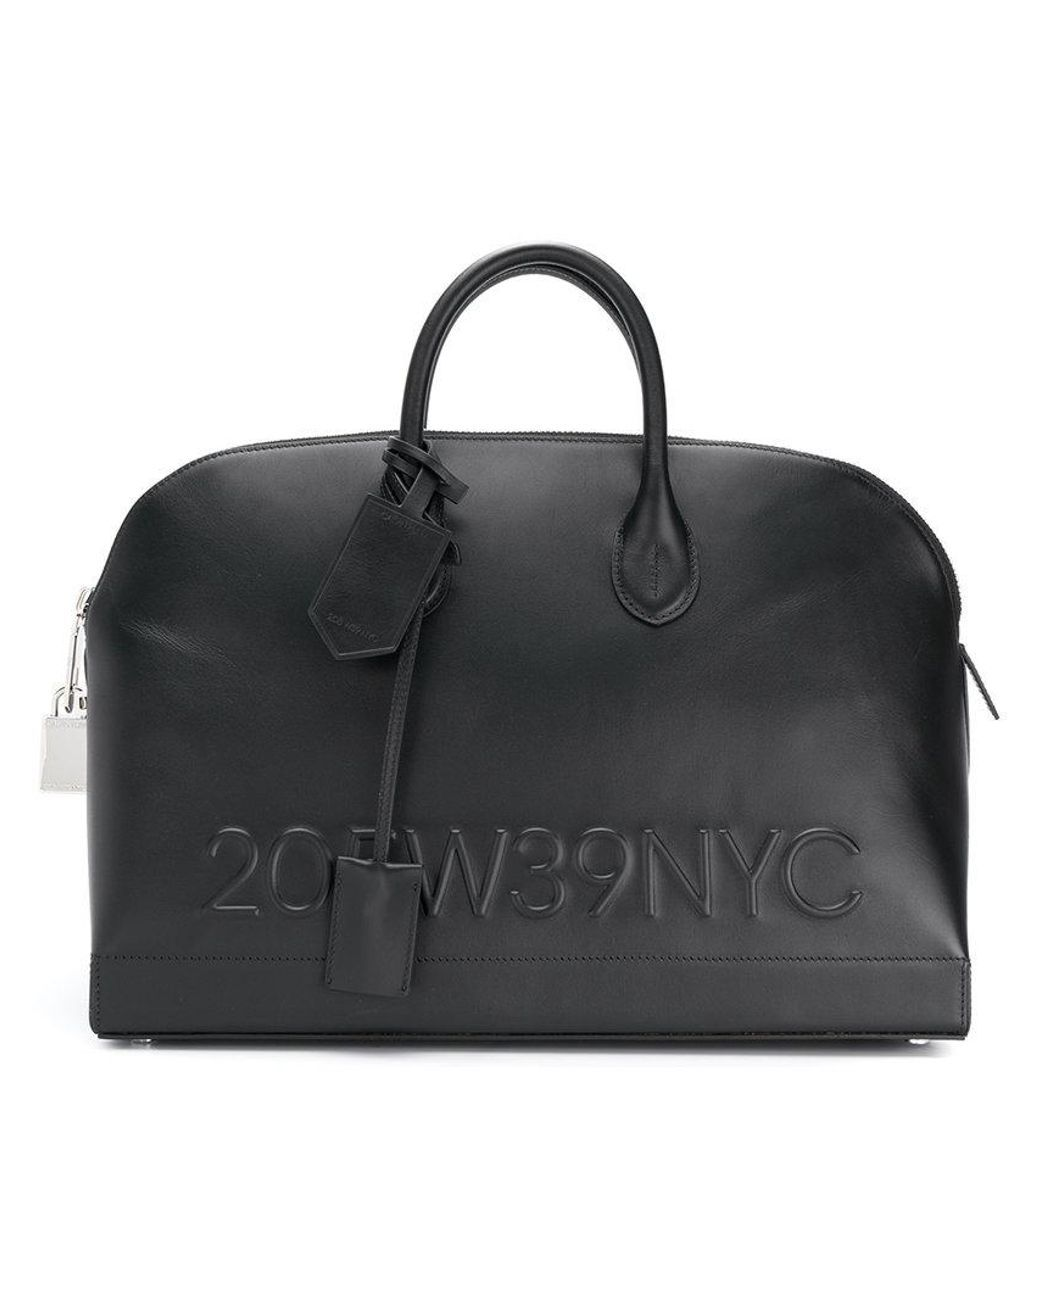 Calvin Klein 205W39nyc logo embossed tote bag Discount 2018 New Discount 100% Original Free Shipping Exclusive Finishline Cheap Price Slj2PM